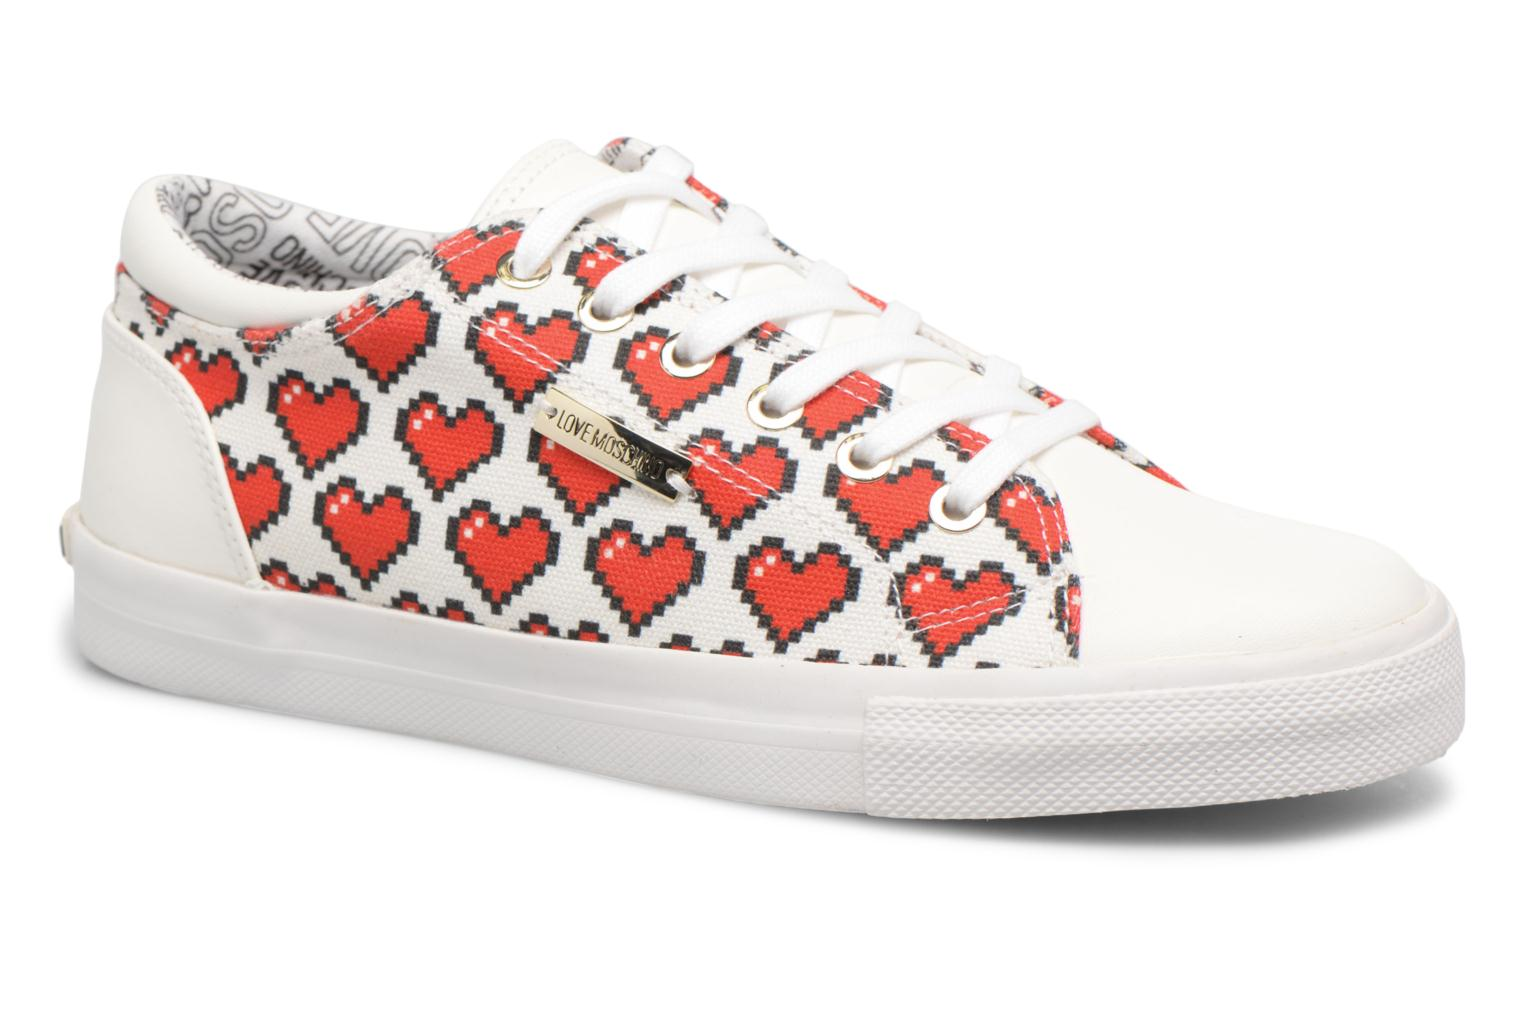 Digital Hearts JA15223G15 by Love Moschino